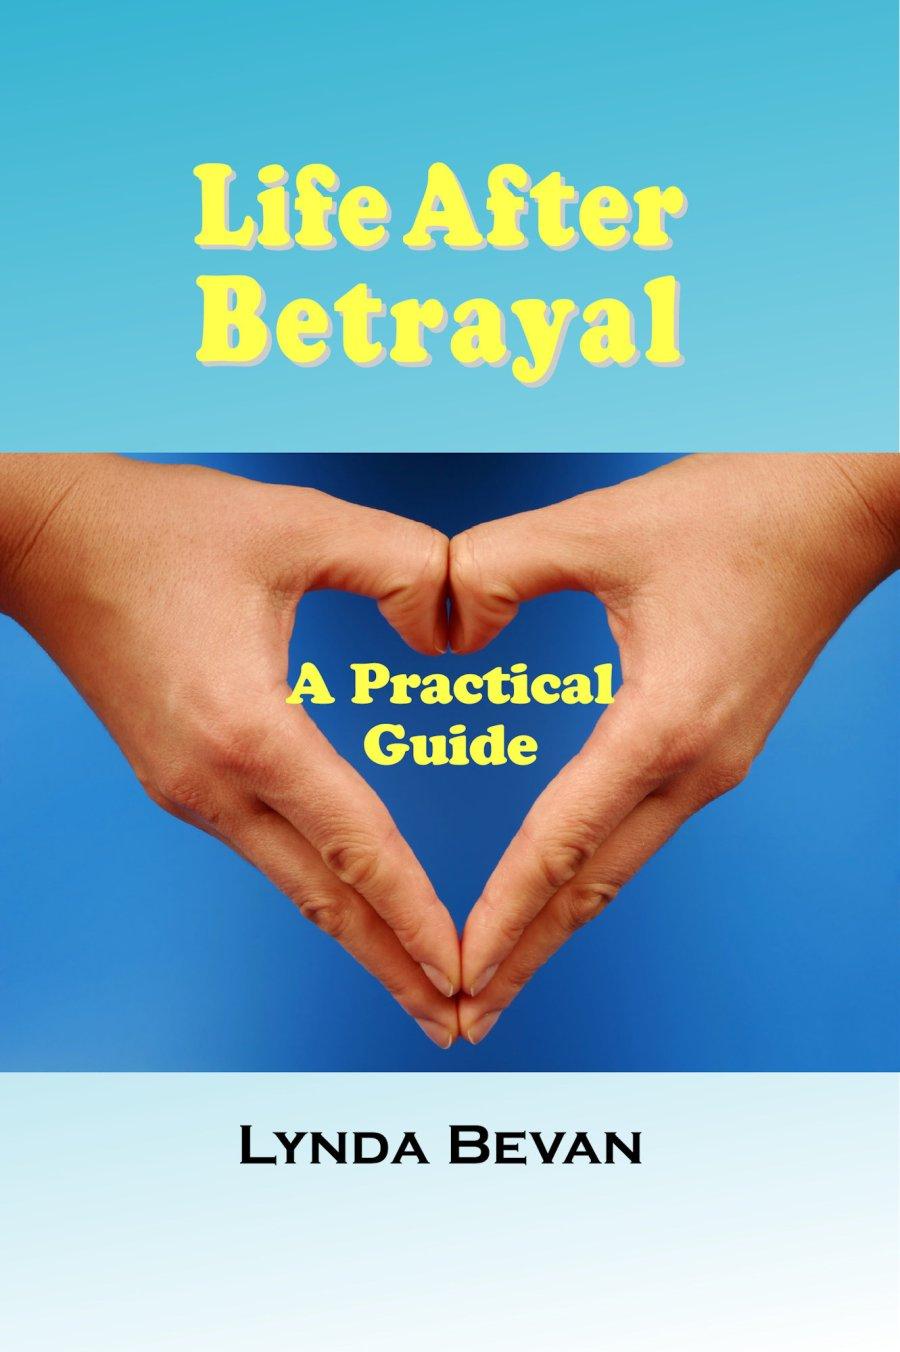 Life After Betrayal: A Practical Guide 978-1-932690-31-6